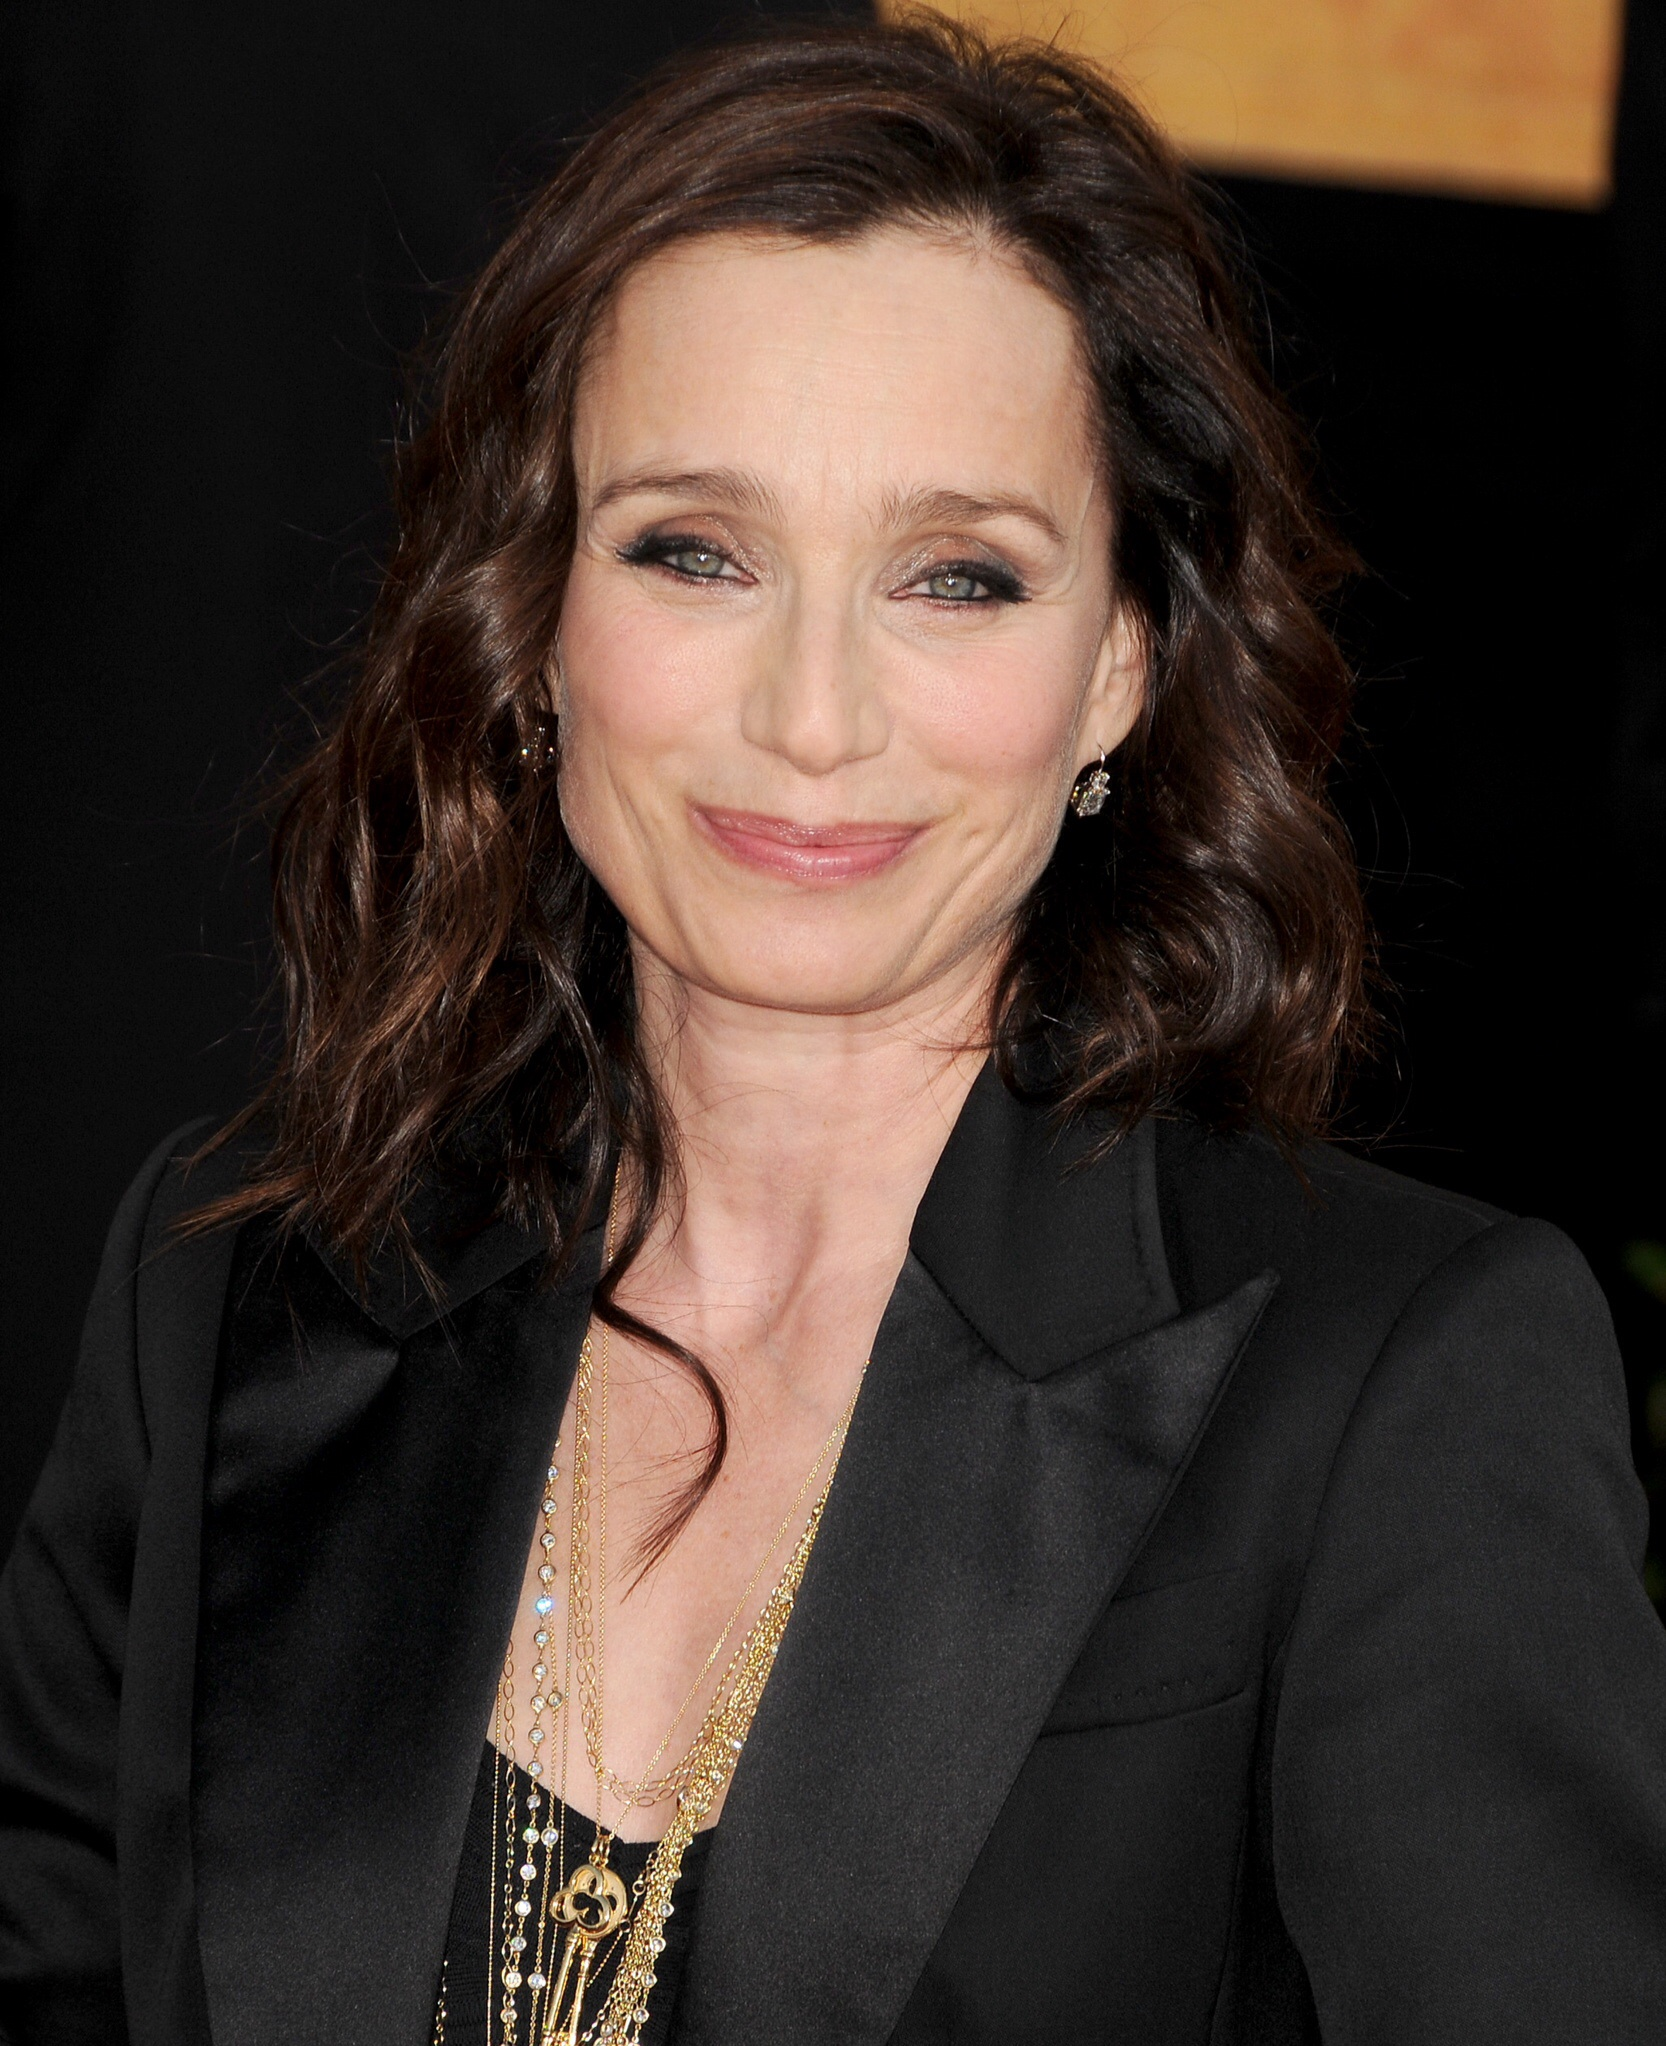 Kristin Scott Thomas (born 1960) Kristin Scott Thomas (born 1960) new photo